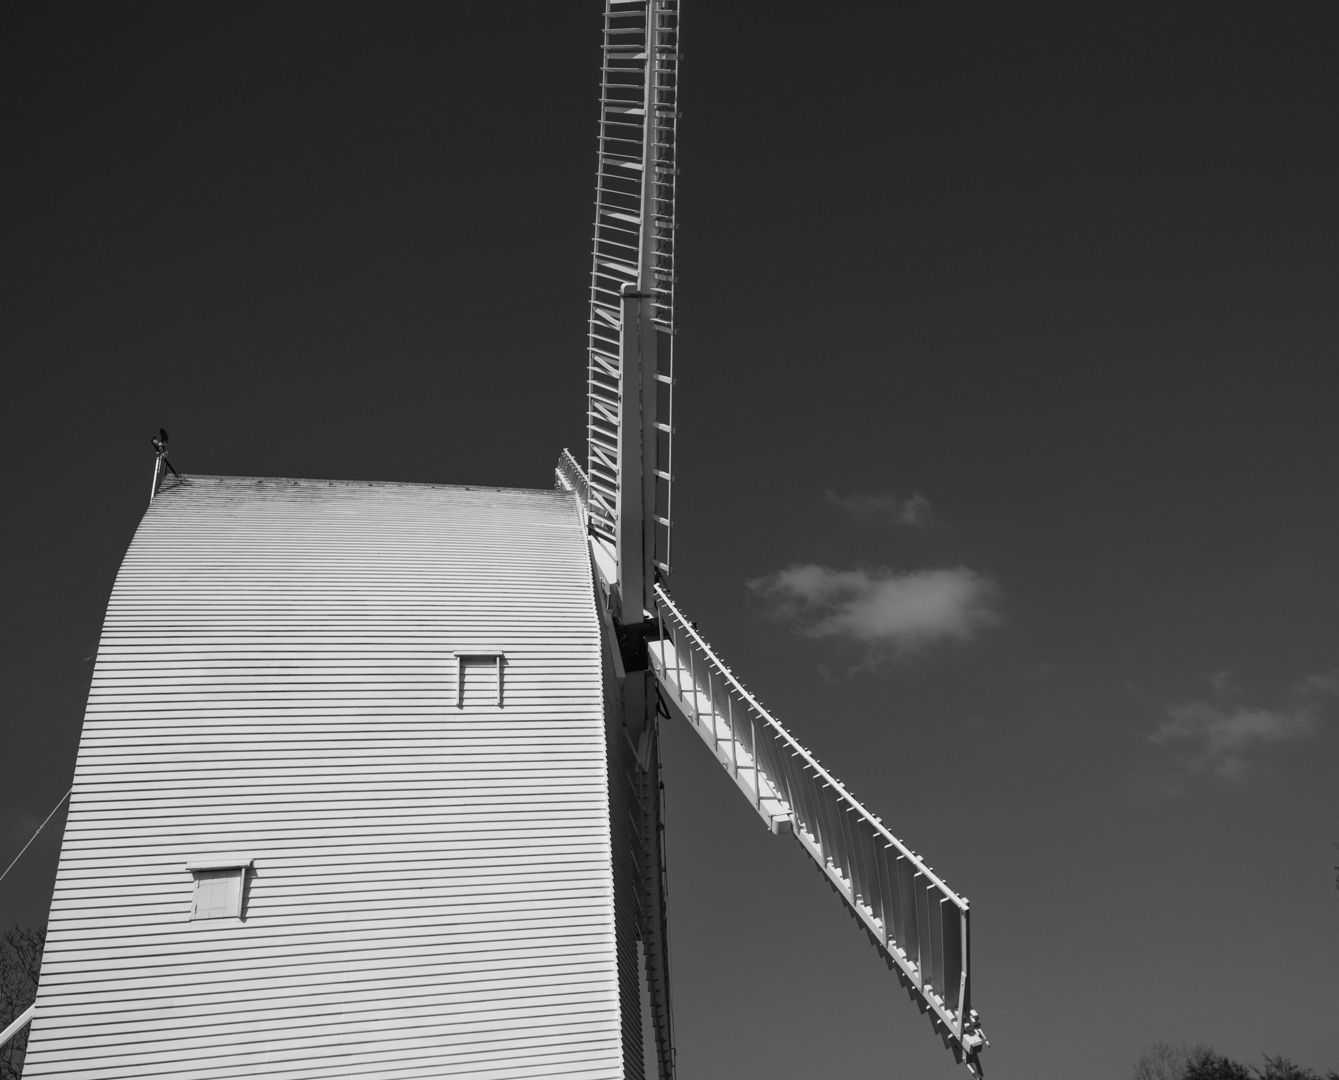 Oldland Windmill, the oldest working windmill in Sussex